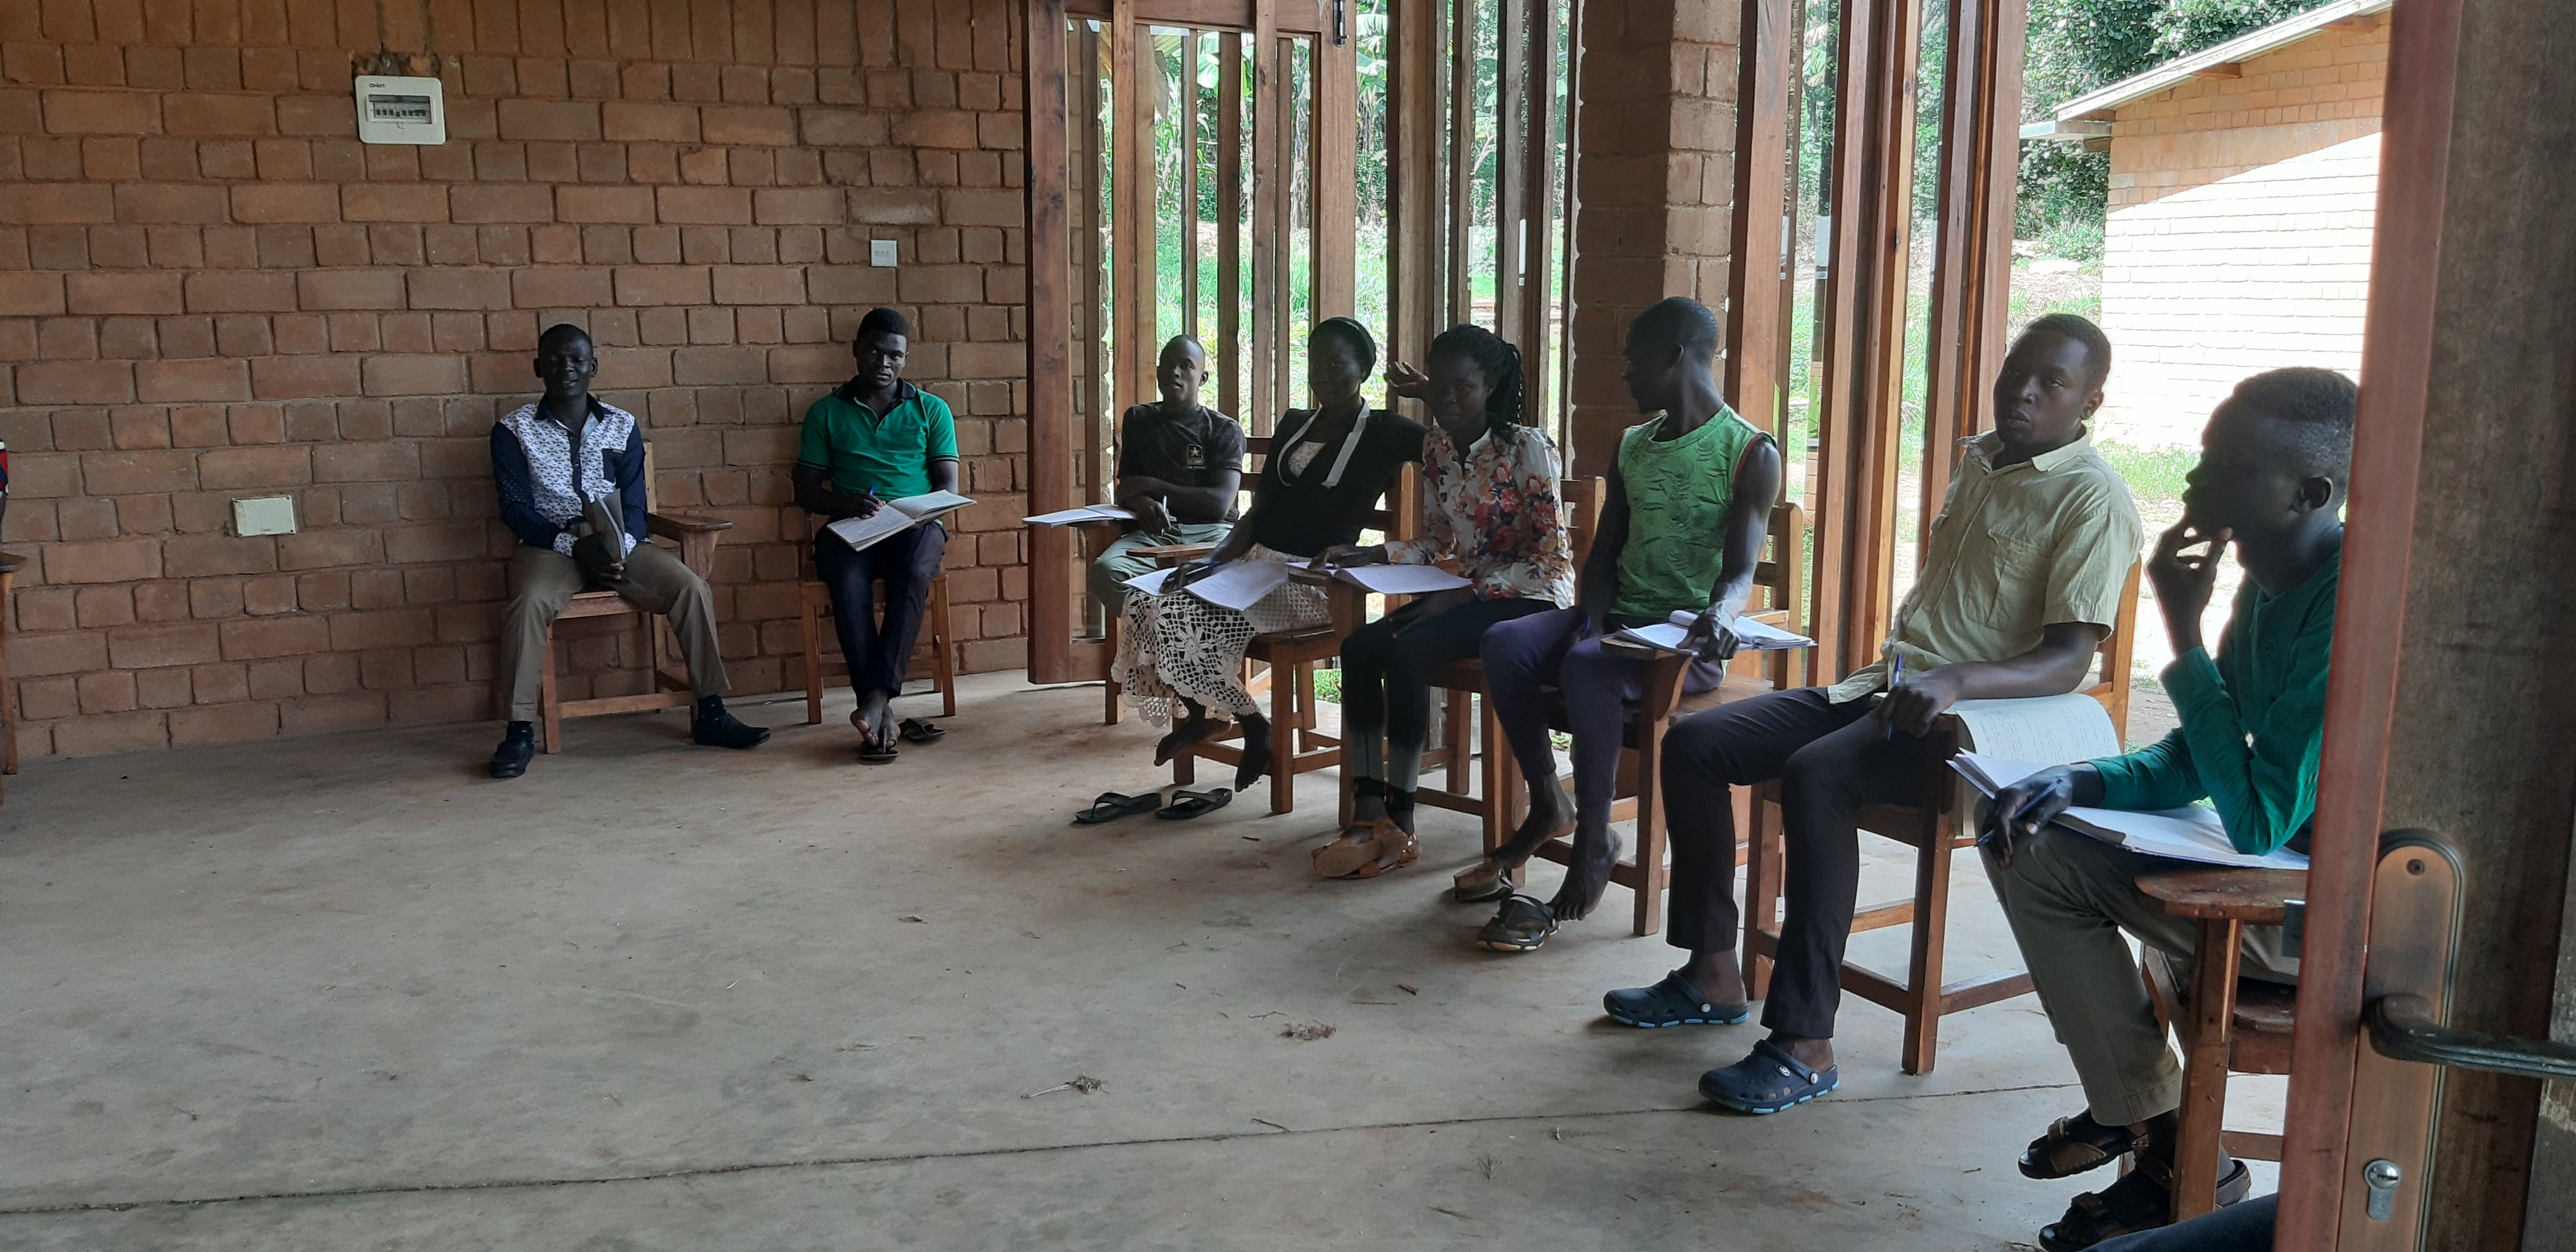 Students at the Rural Organic Agricultural Training College in Uganda